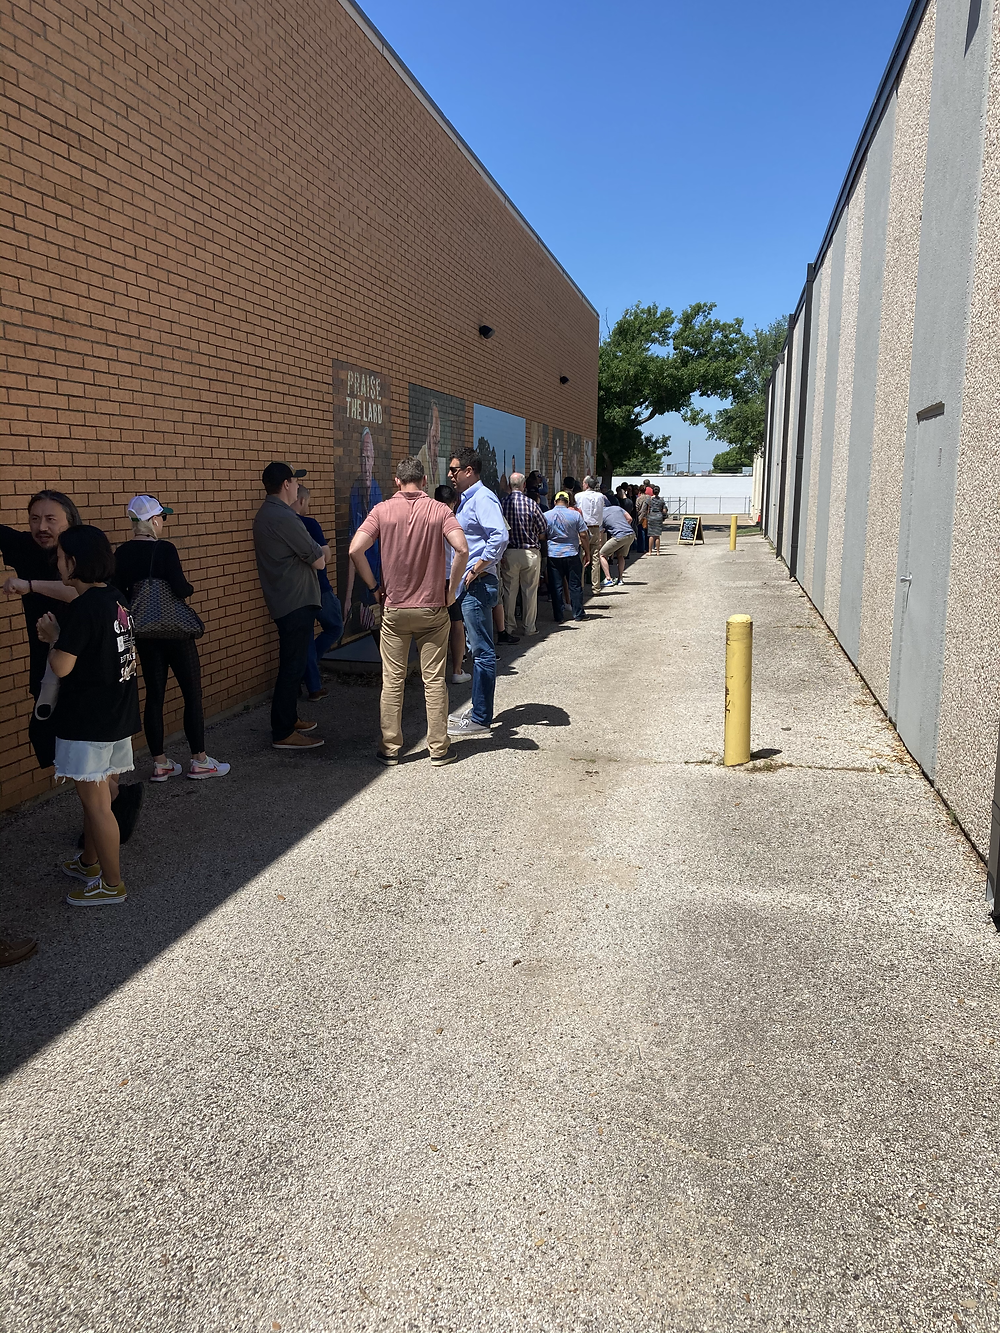 Cattleack BBQ line (wrapped around the store)